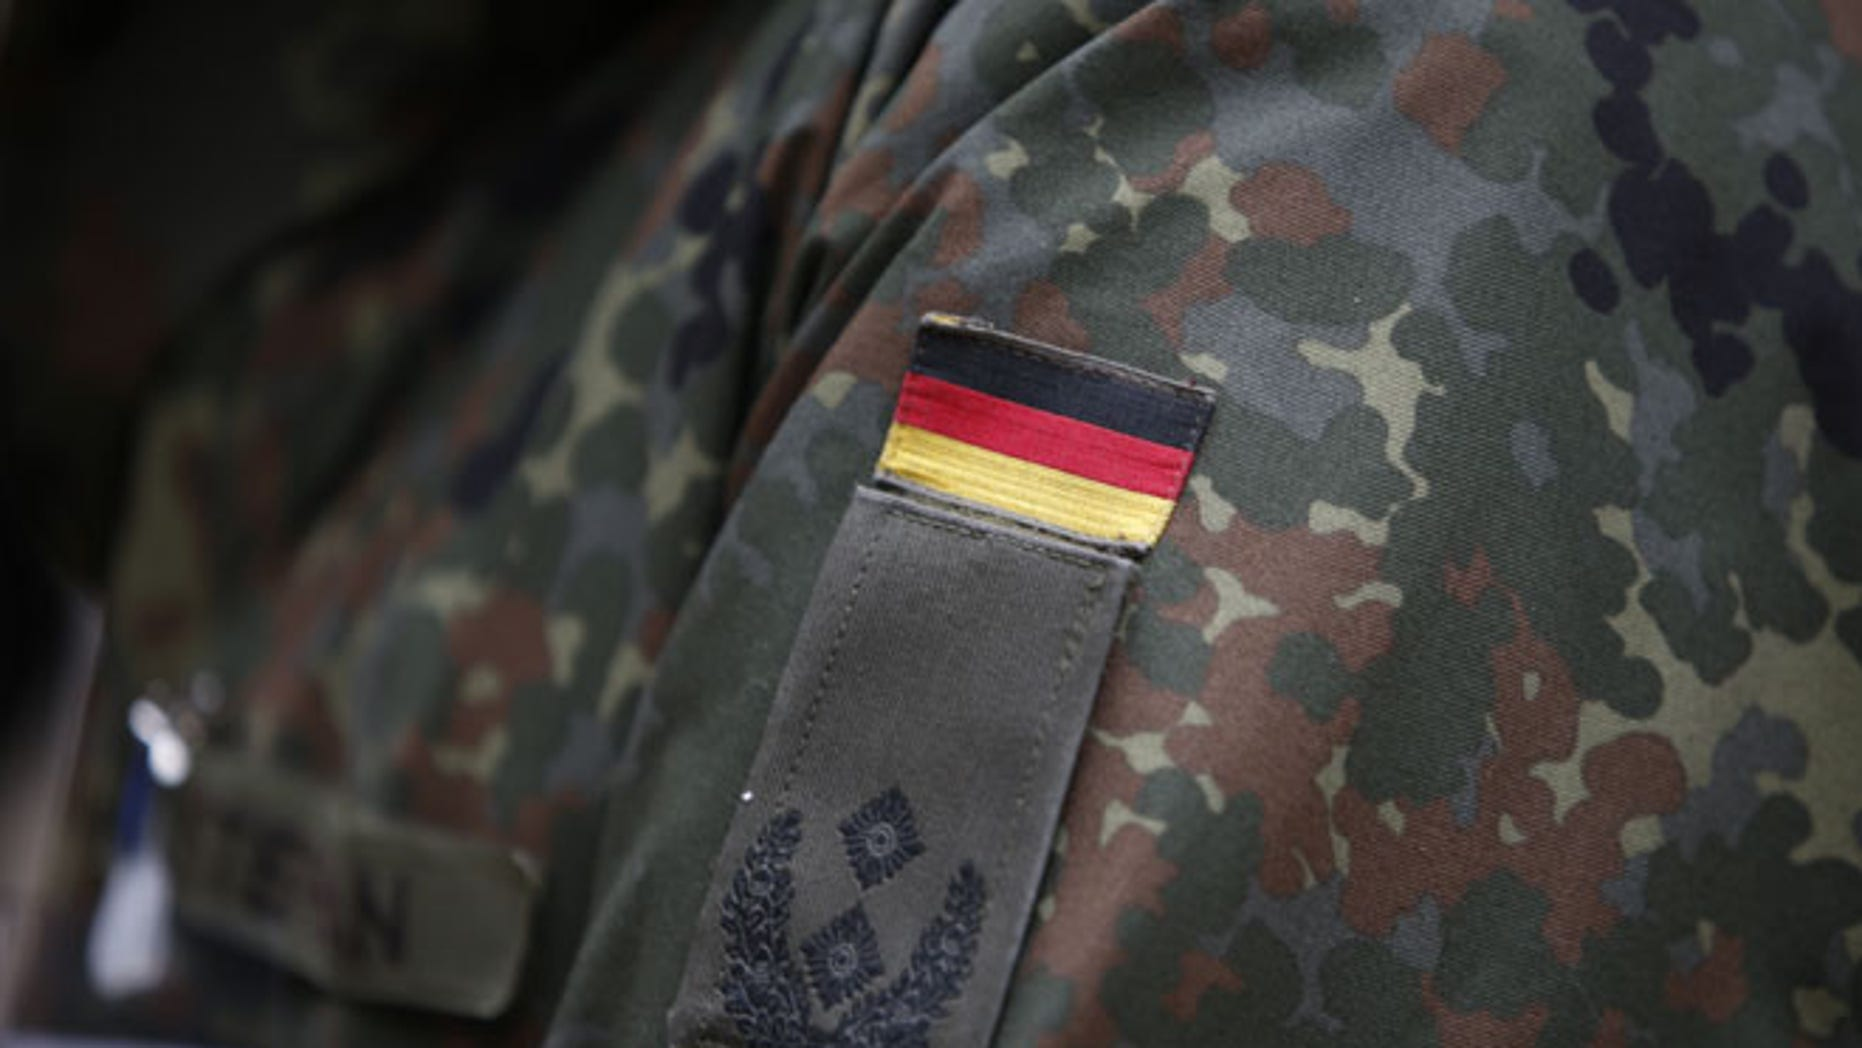 Germany is working to determine how many of its soldiers have defected the country to fight with ISIS.